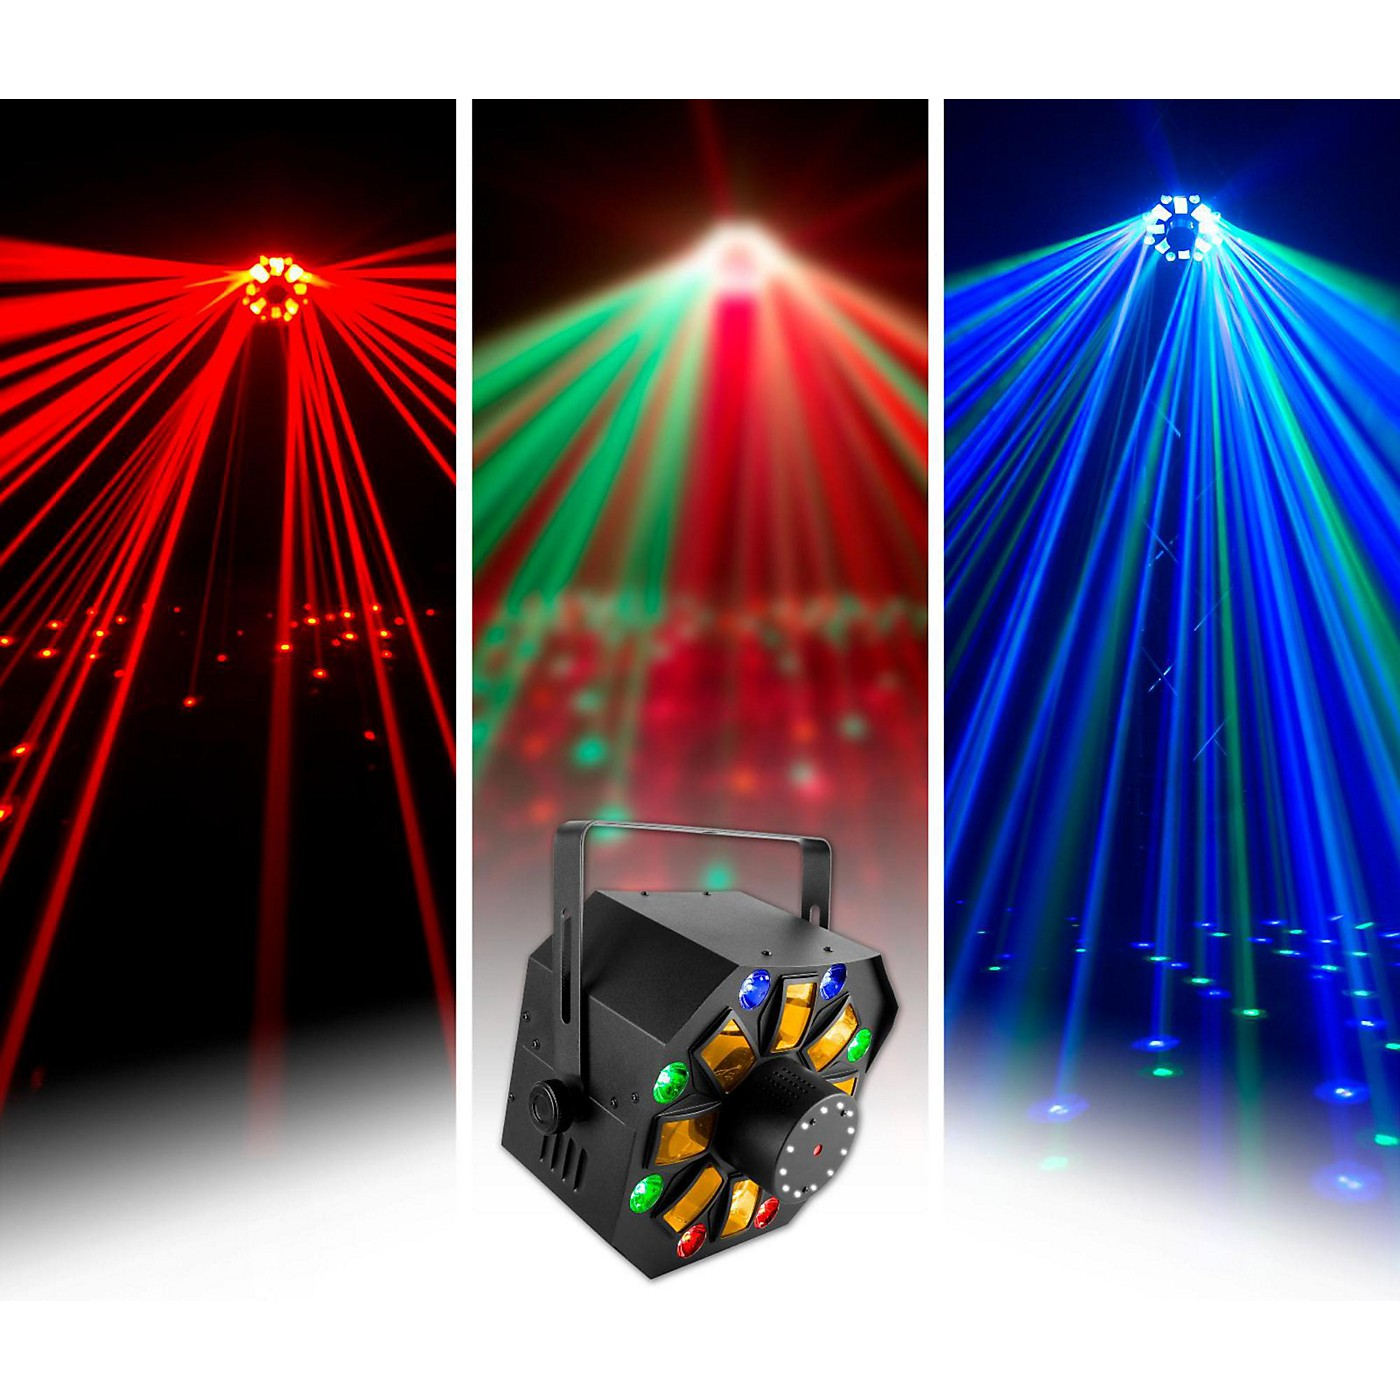 CHAUVET DJ SWARMWASHFX Stage Laser with LED Lighting Effect and Strobe Light thumbnail